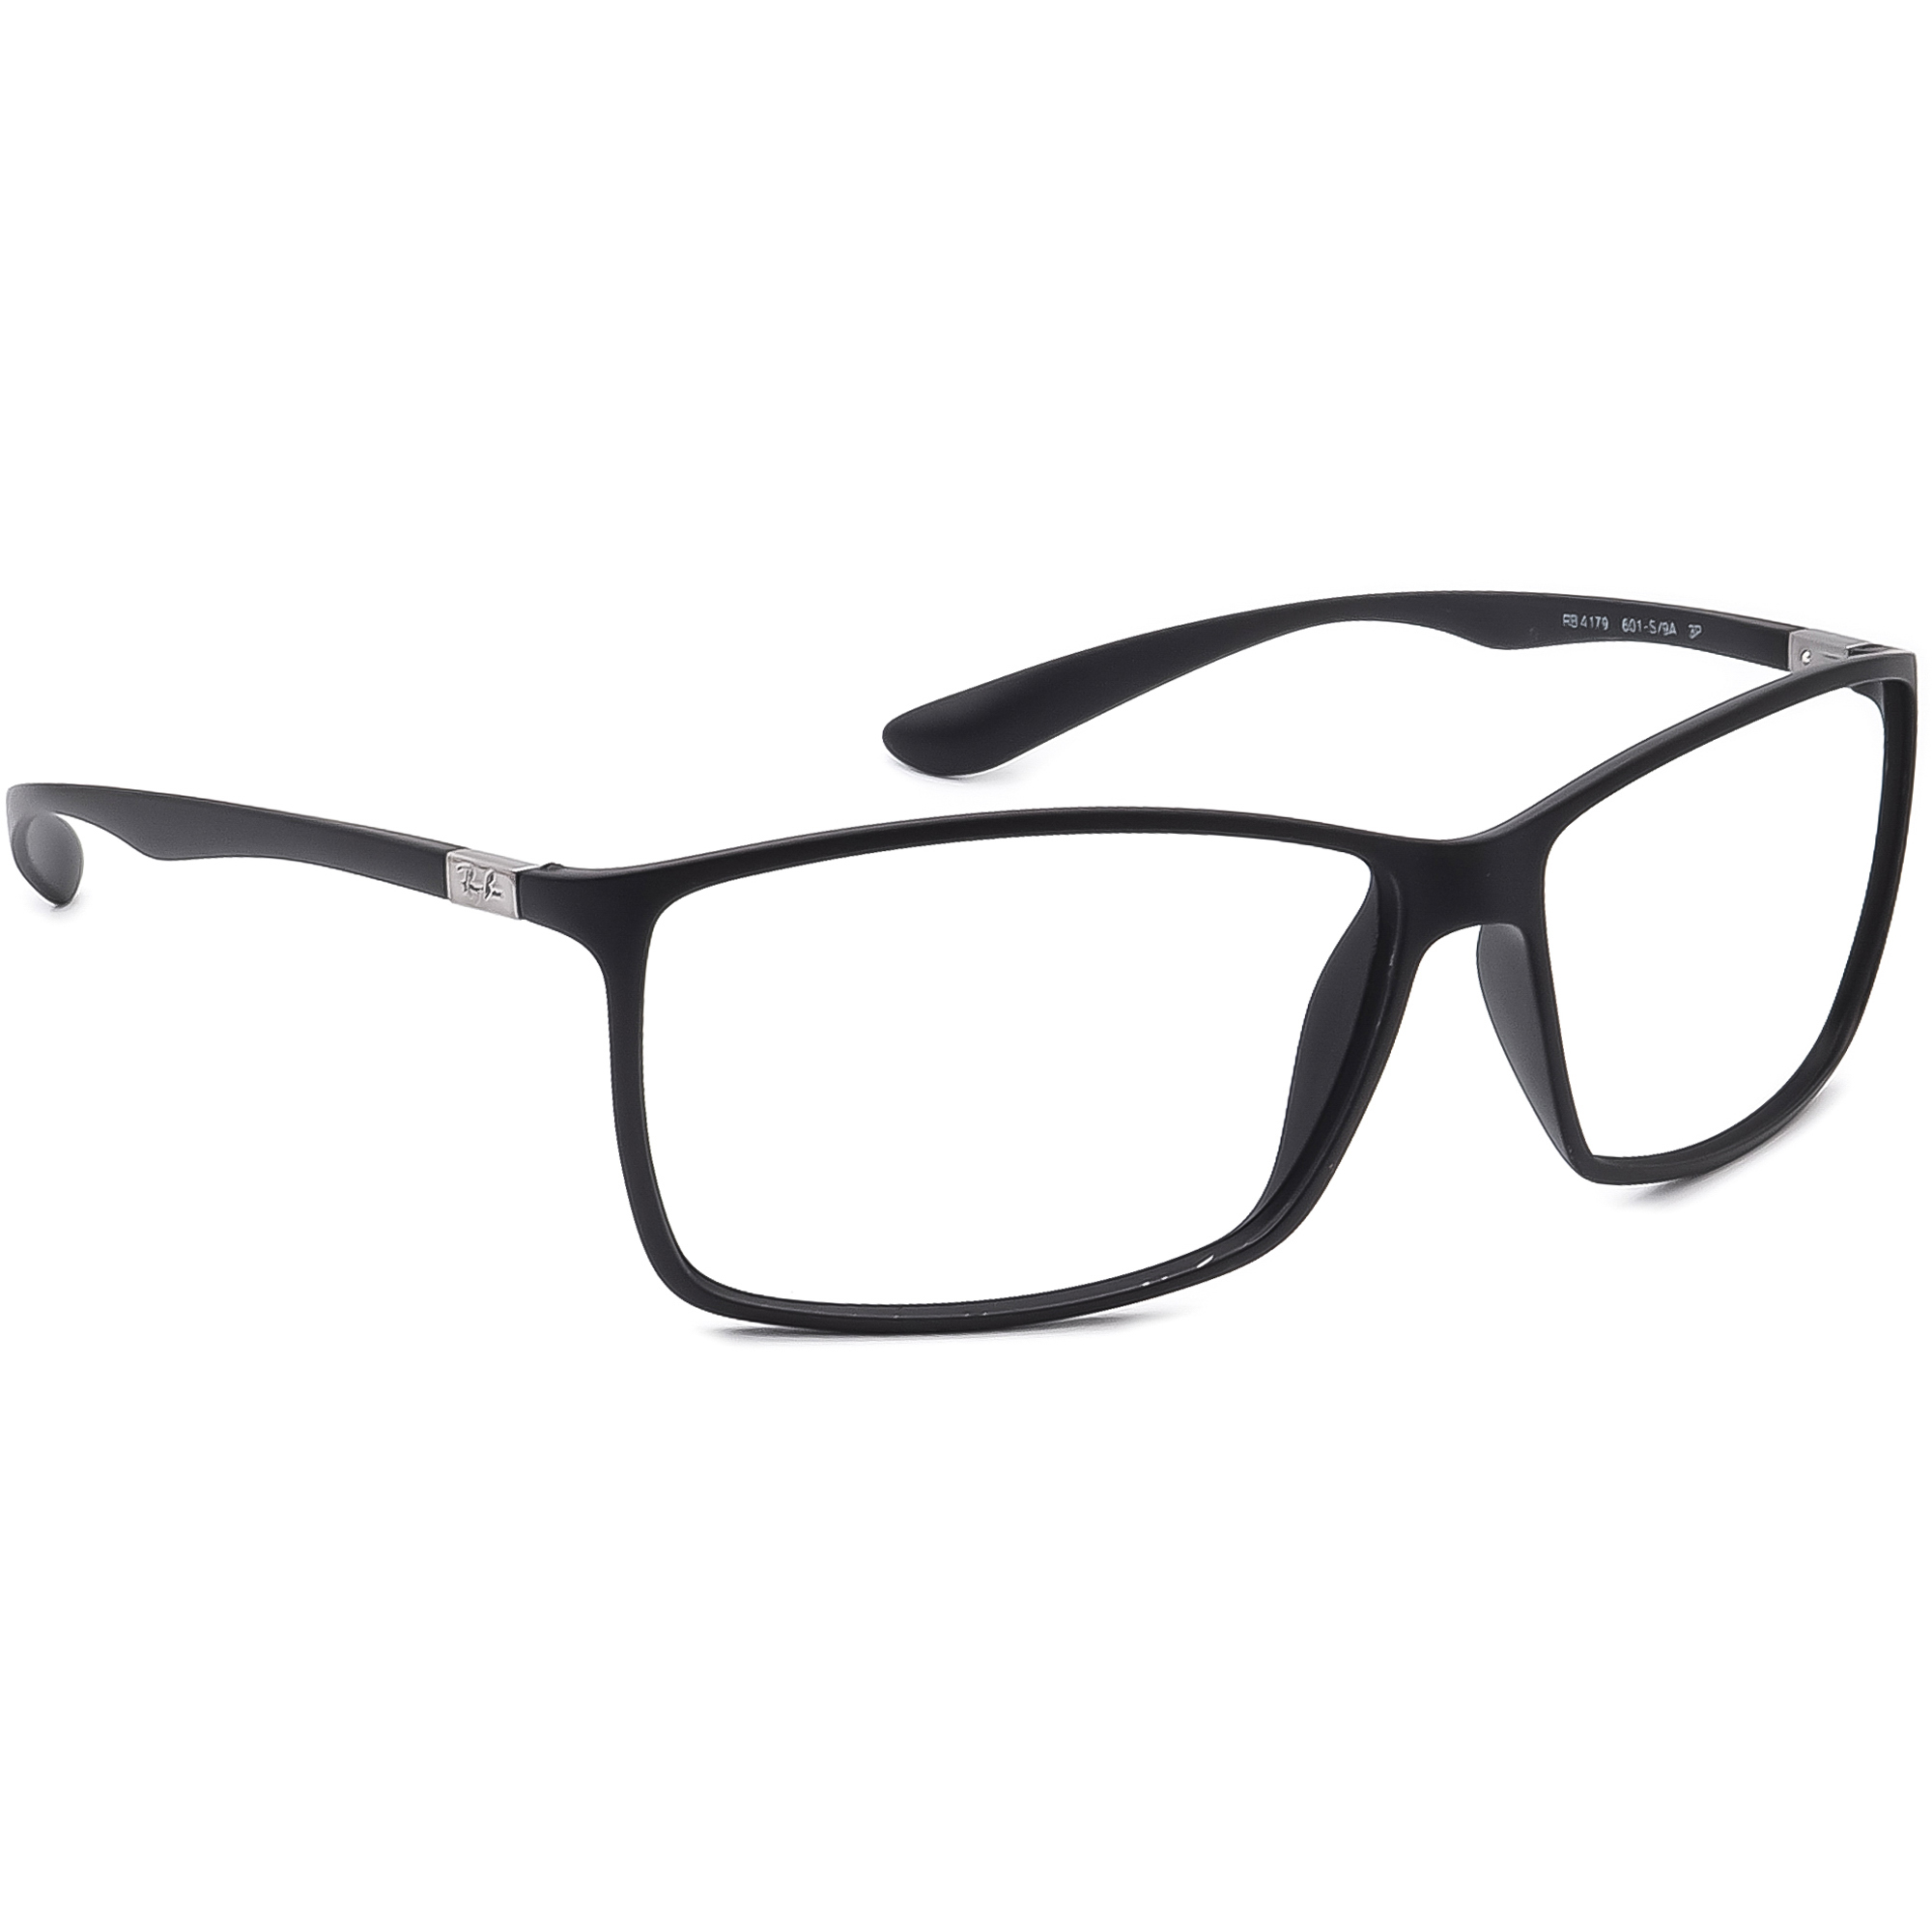 Ray-Ban RB 4179 601-S Liteforce Sunglasses Frame Only